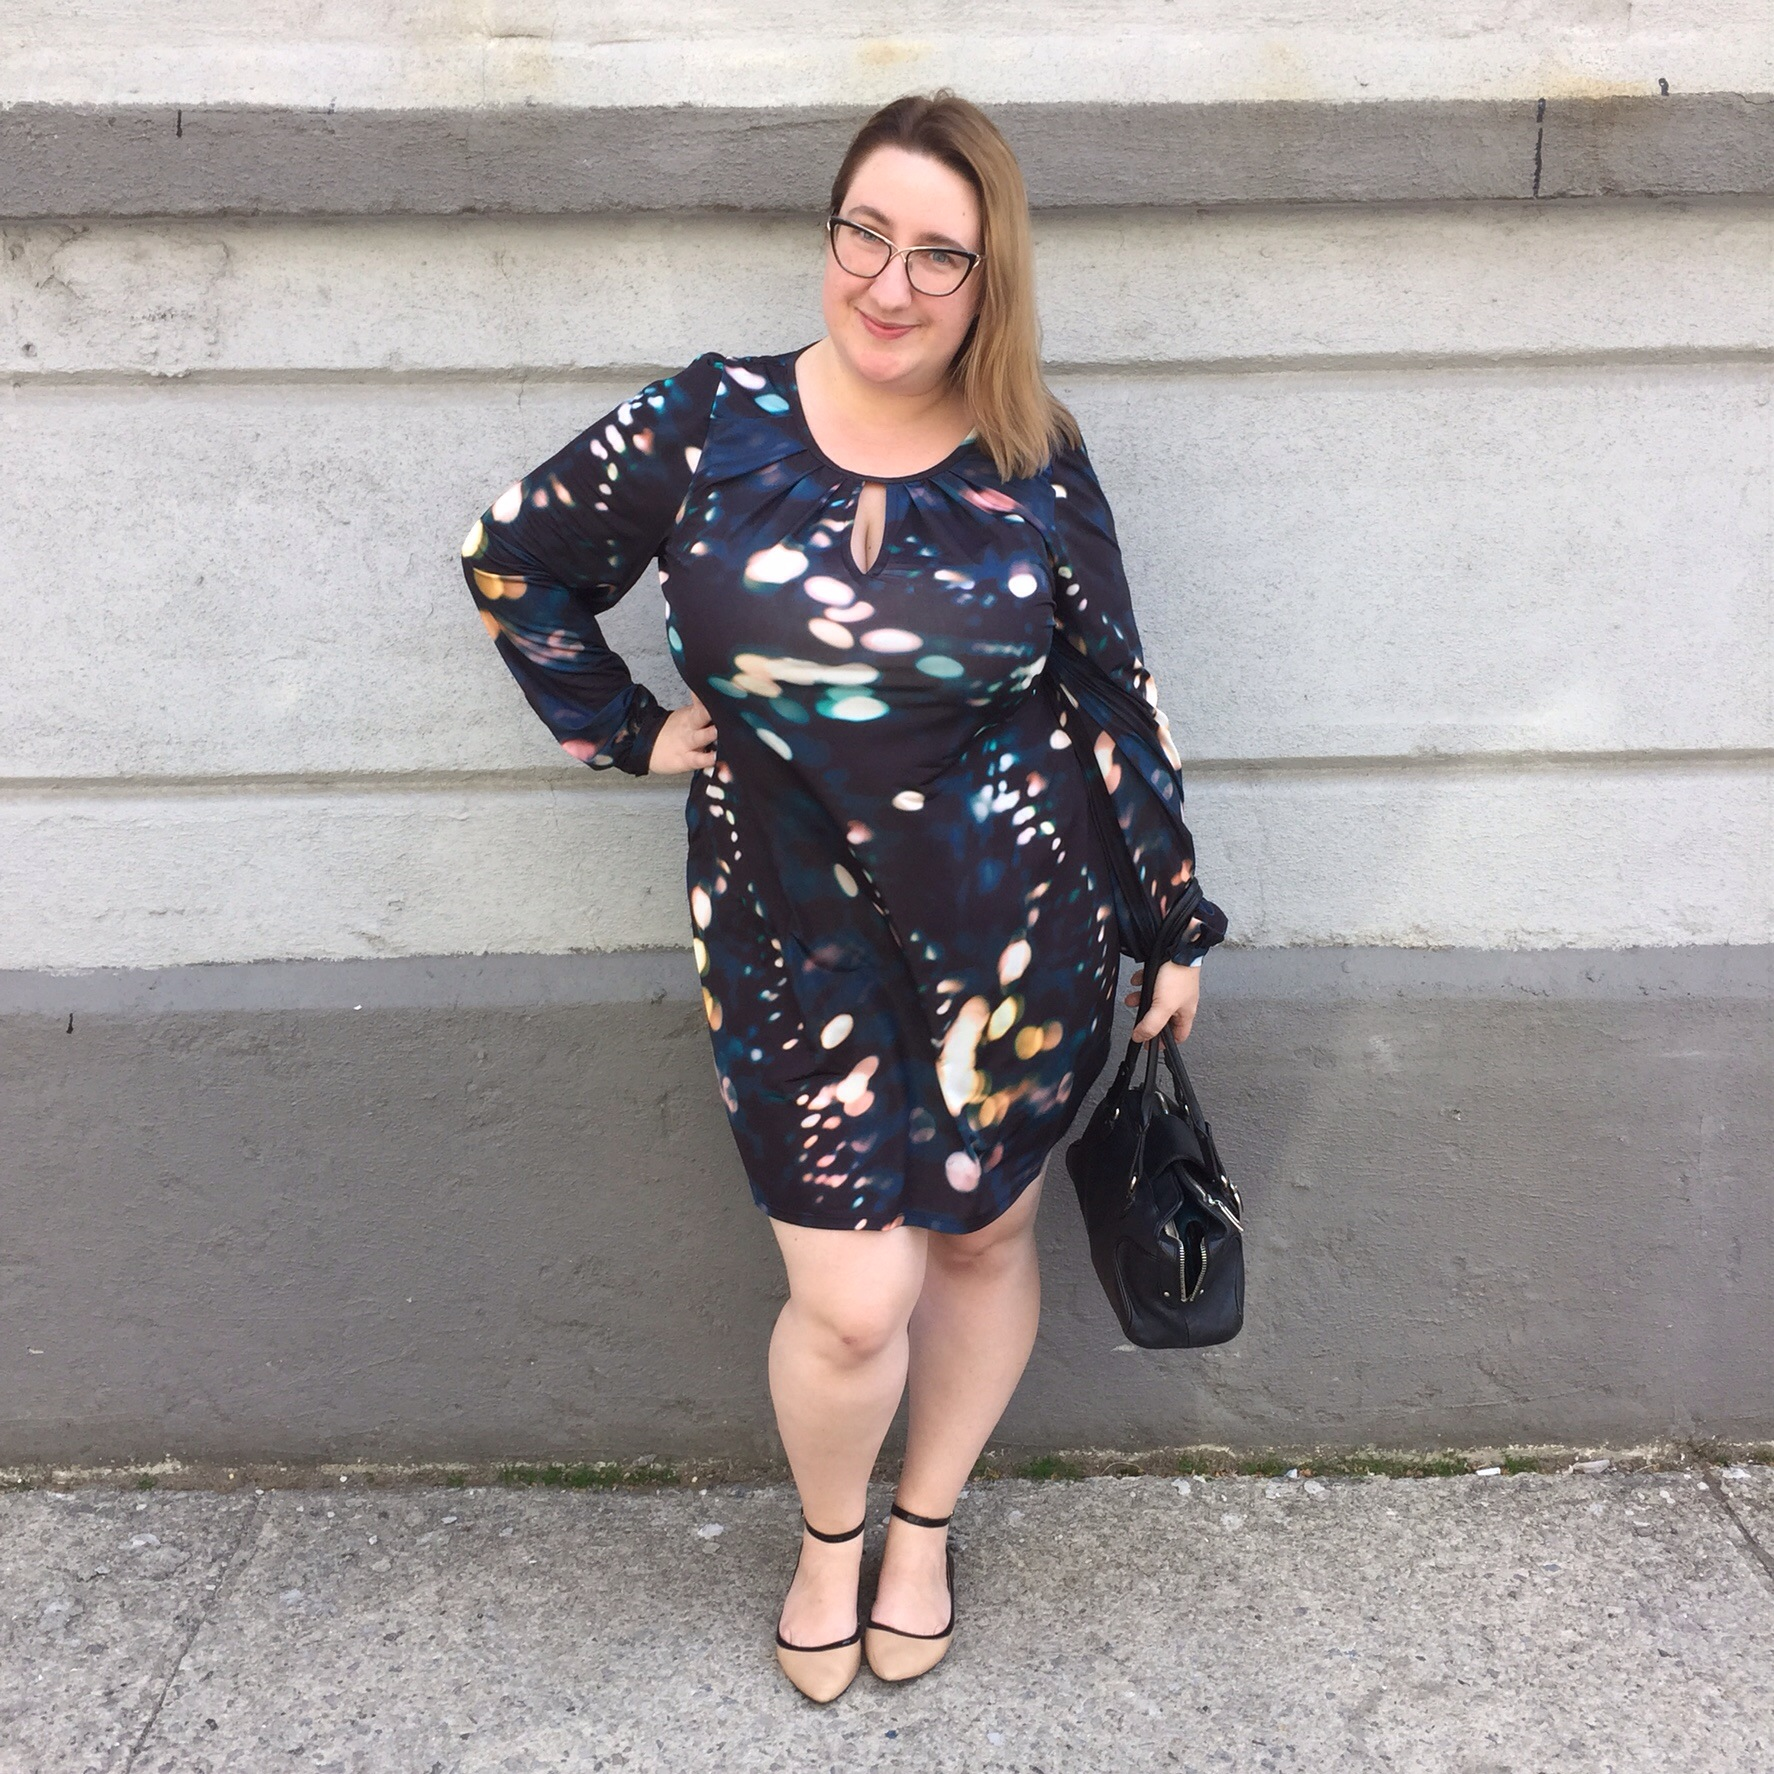 OOTD: Gwynnie Bee and my Dream Dress